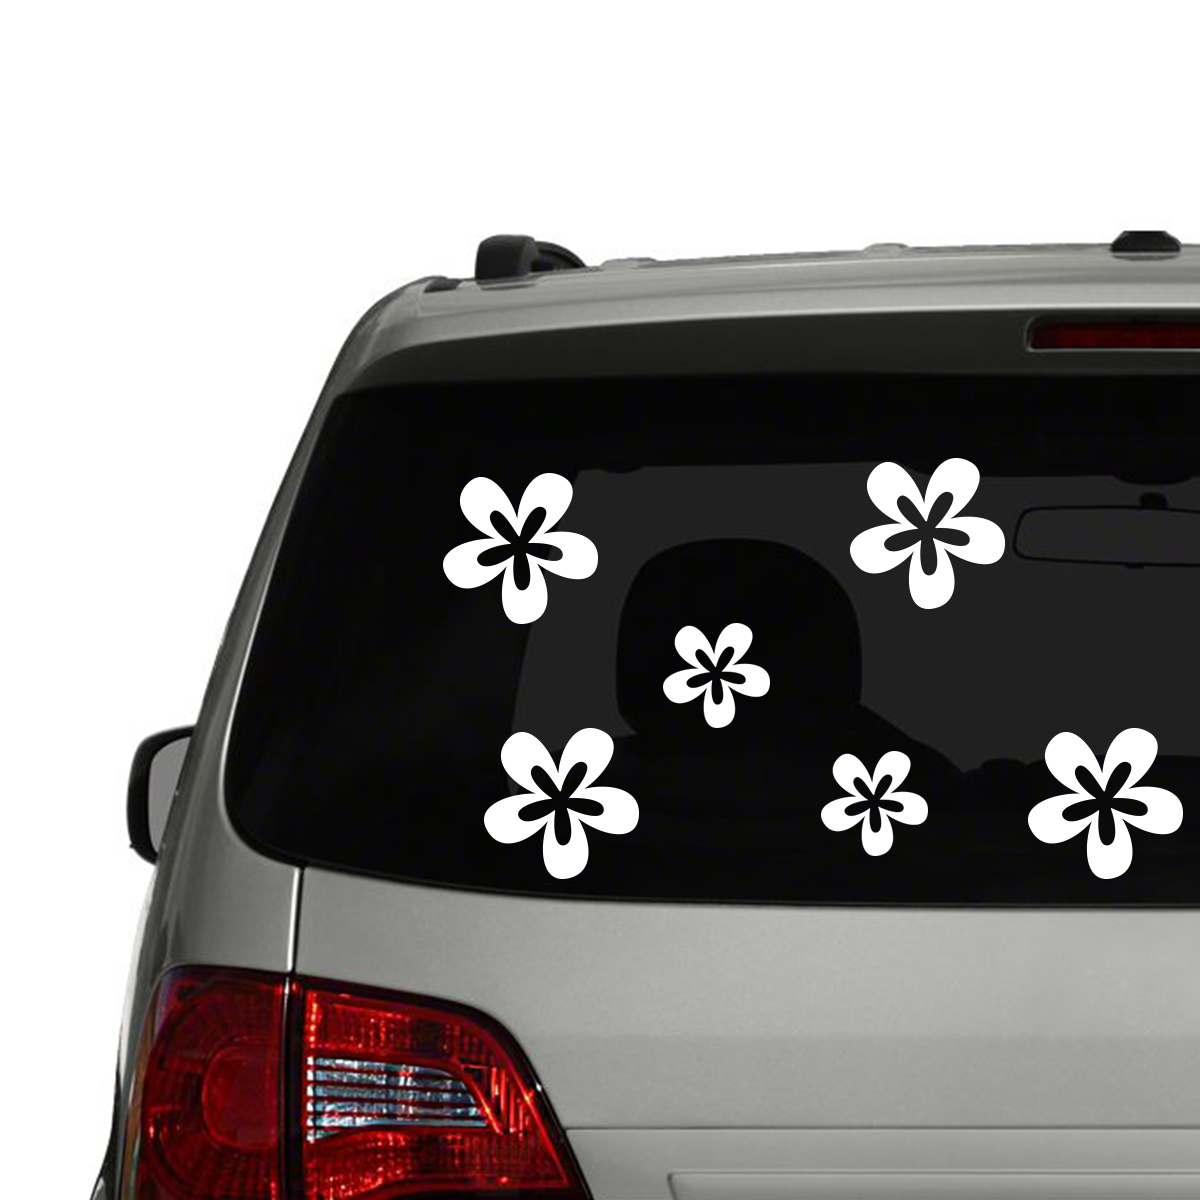 sticker voiture jolie lots de fleurs stickers nature fleurs ambiance sticker. Black Bedroom Furniture Sets. Home Design Ideas